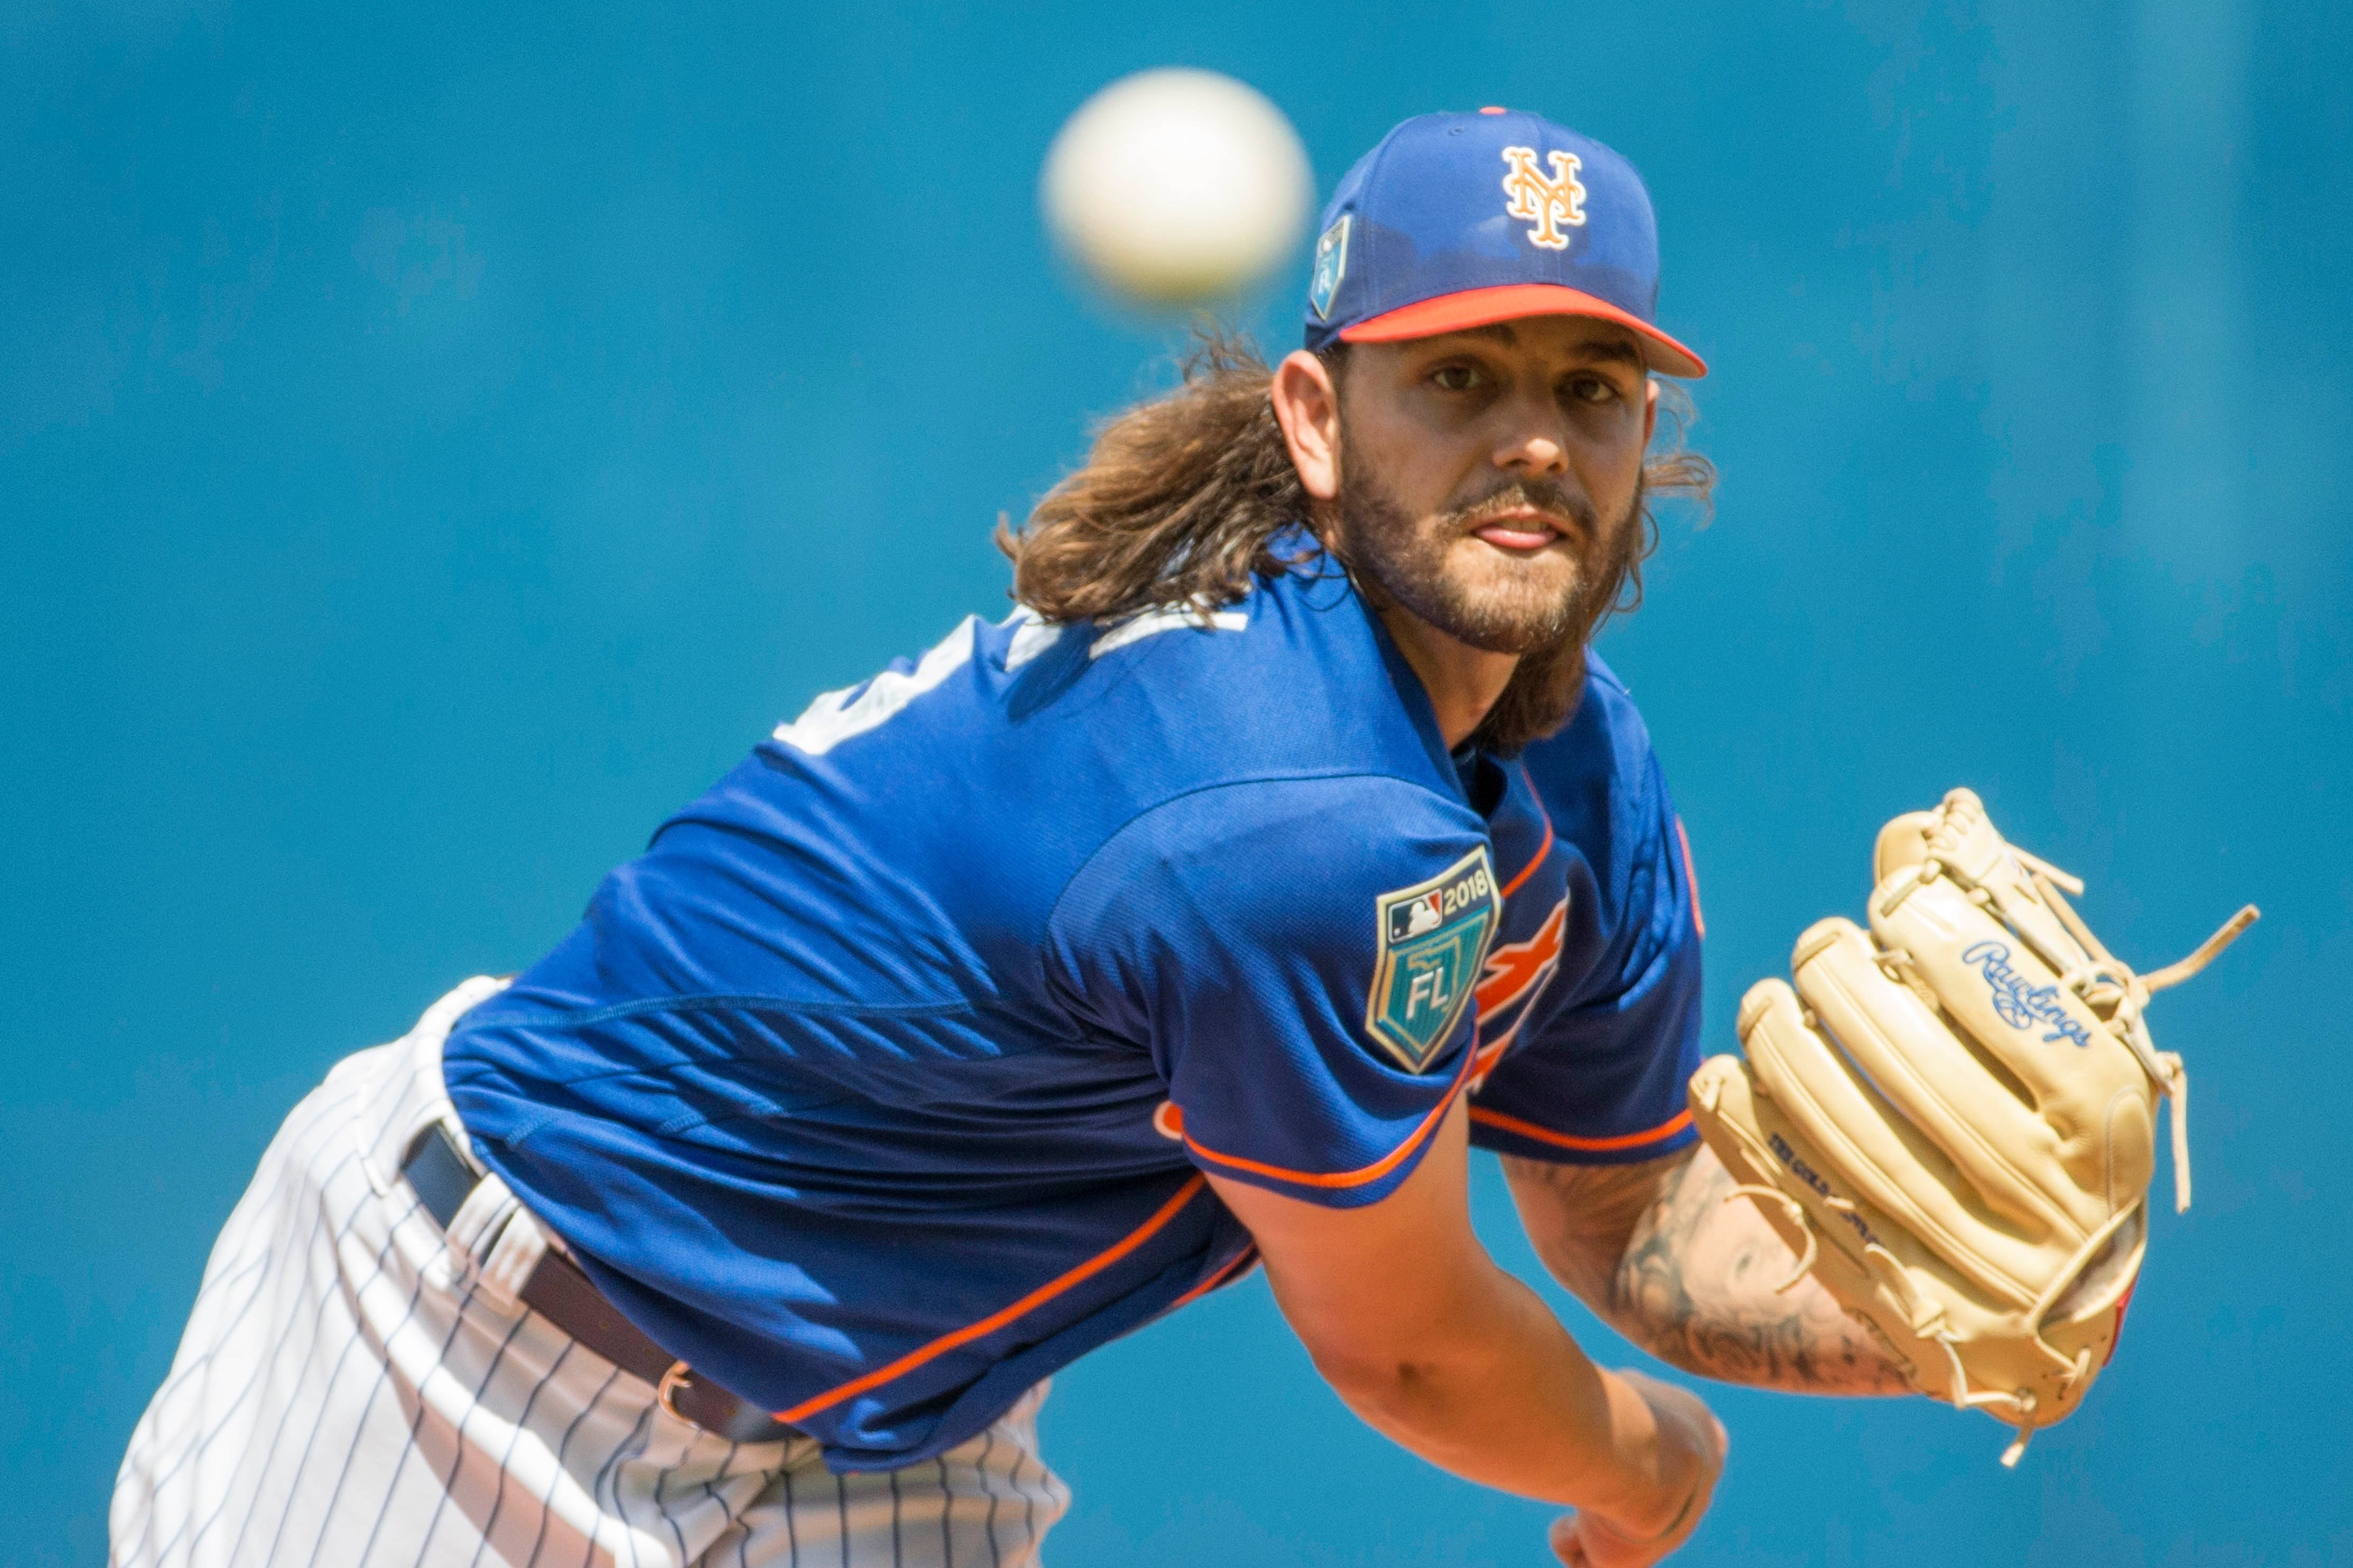 Robert Gsellman thinks he's found the pitch that killed him